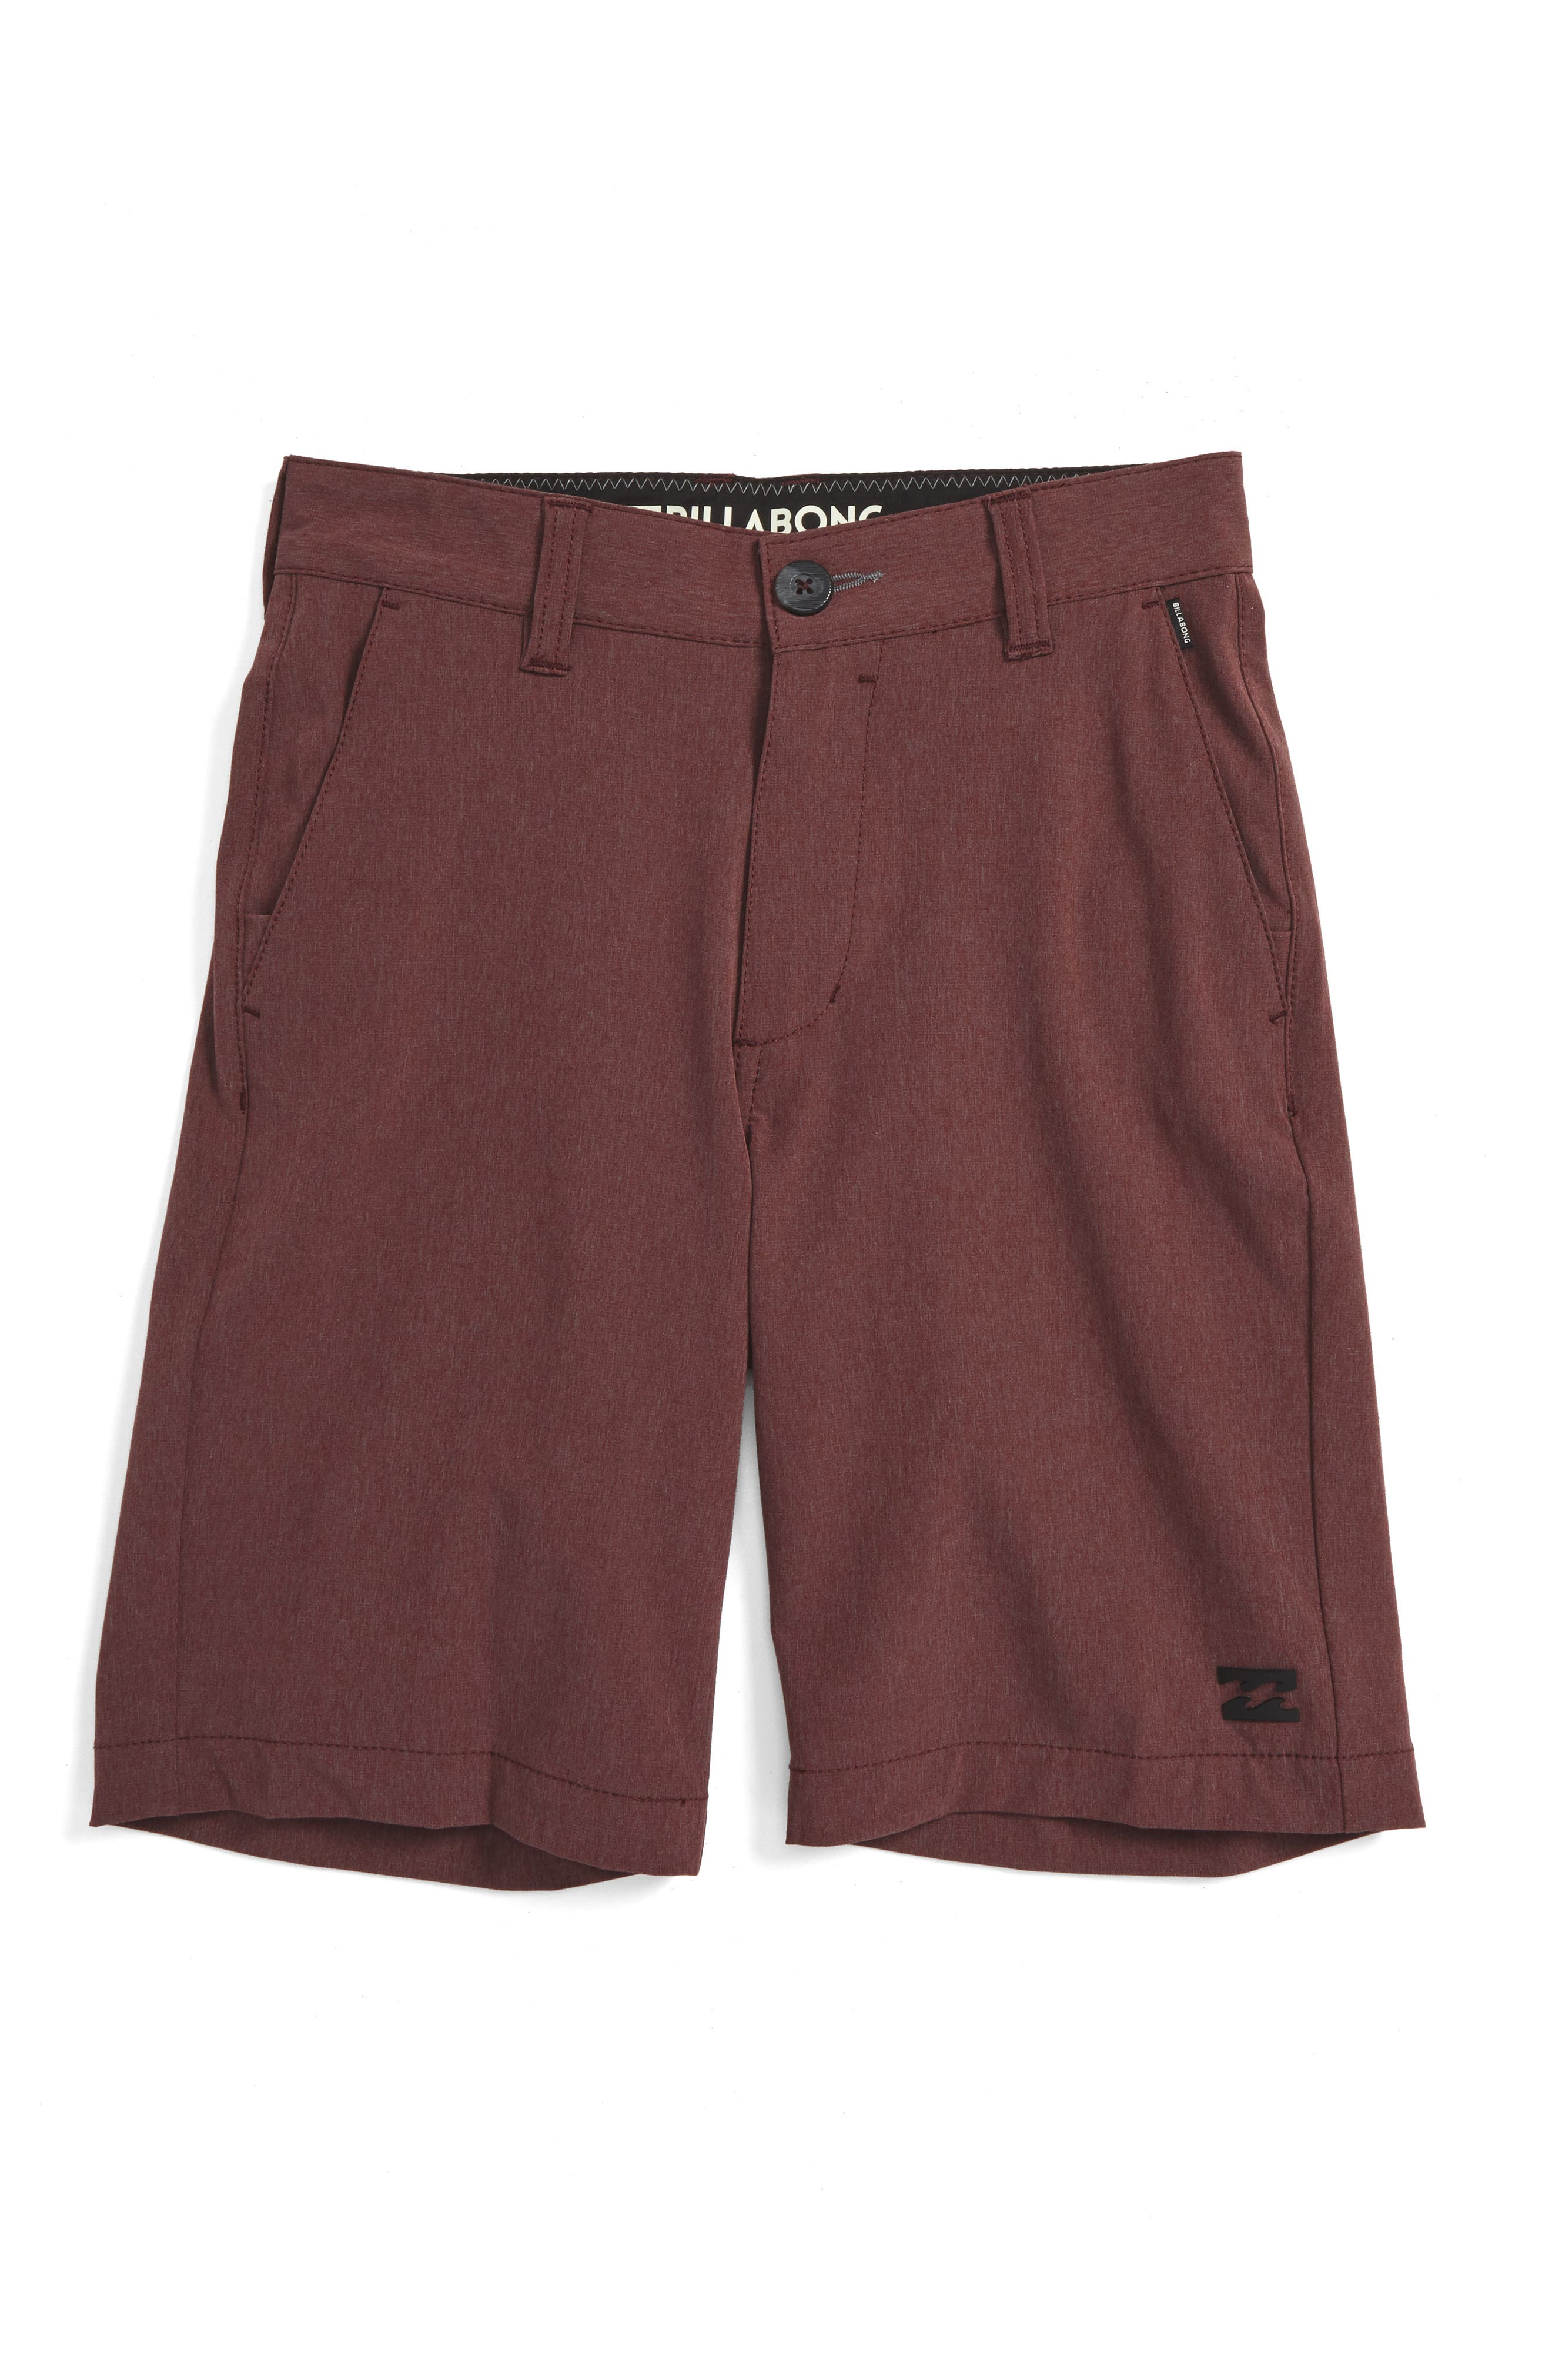 Crossfire X Submersible Hybrid Shorts,                             Main thumbnail 11, color,